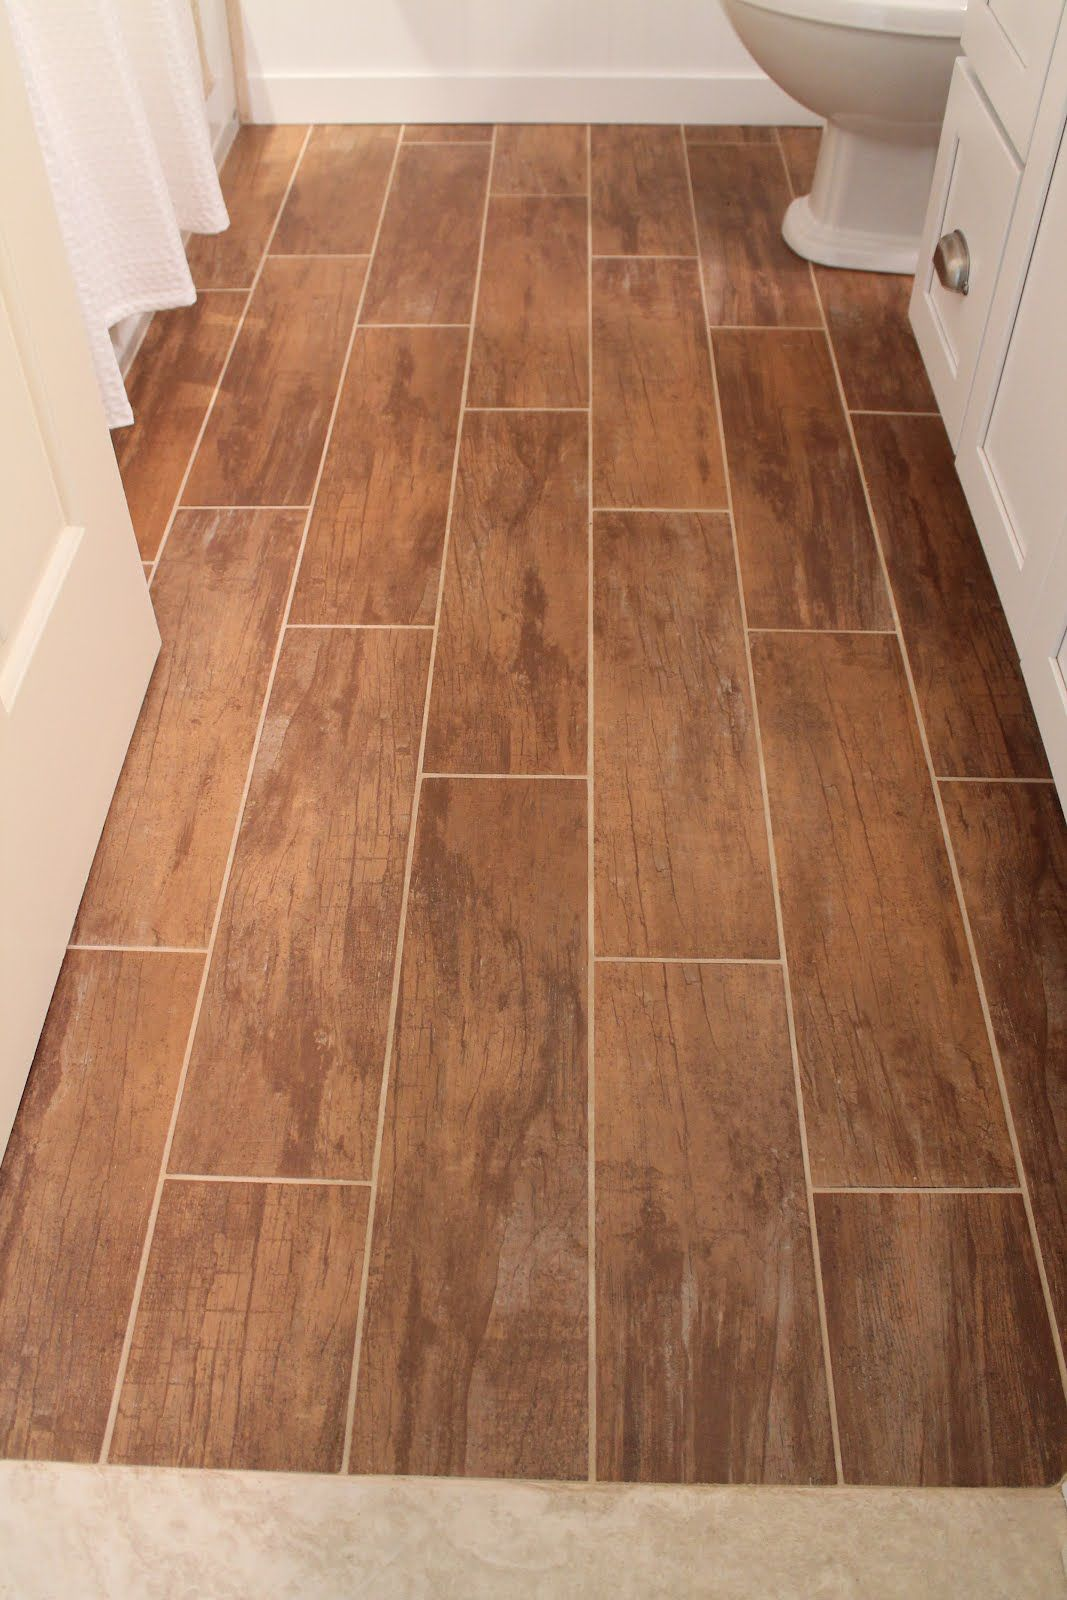 Importance Of Ceramic Floor Tile Wood Grain Tile Home